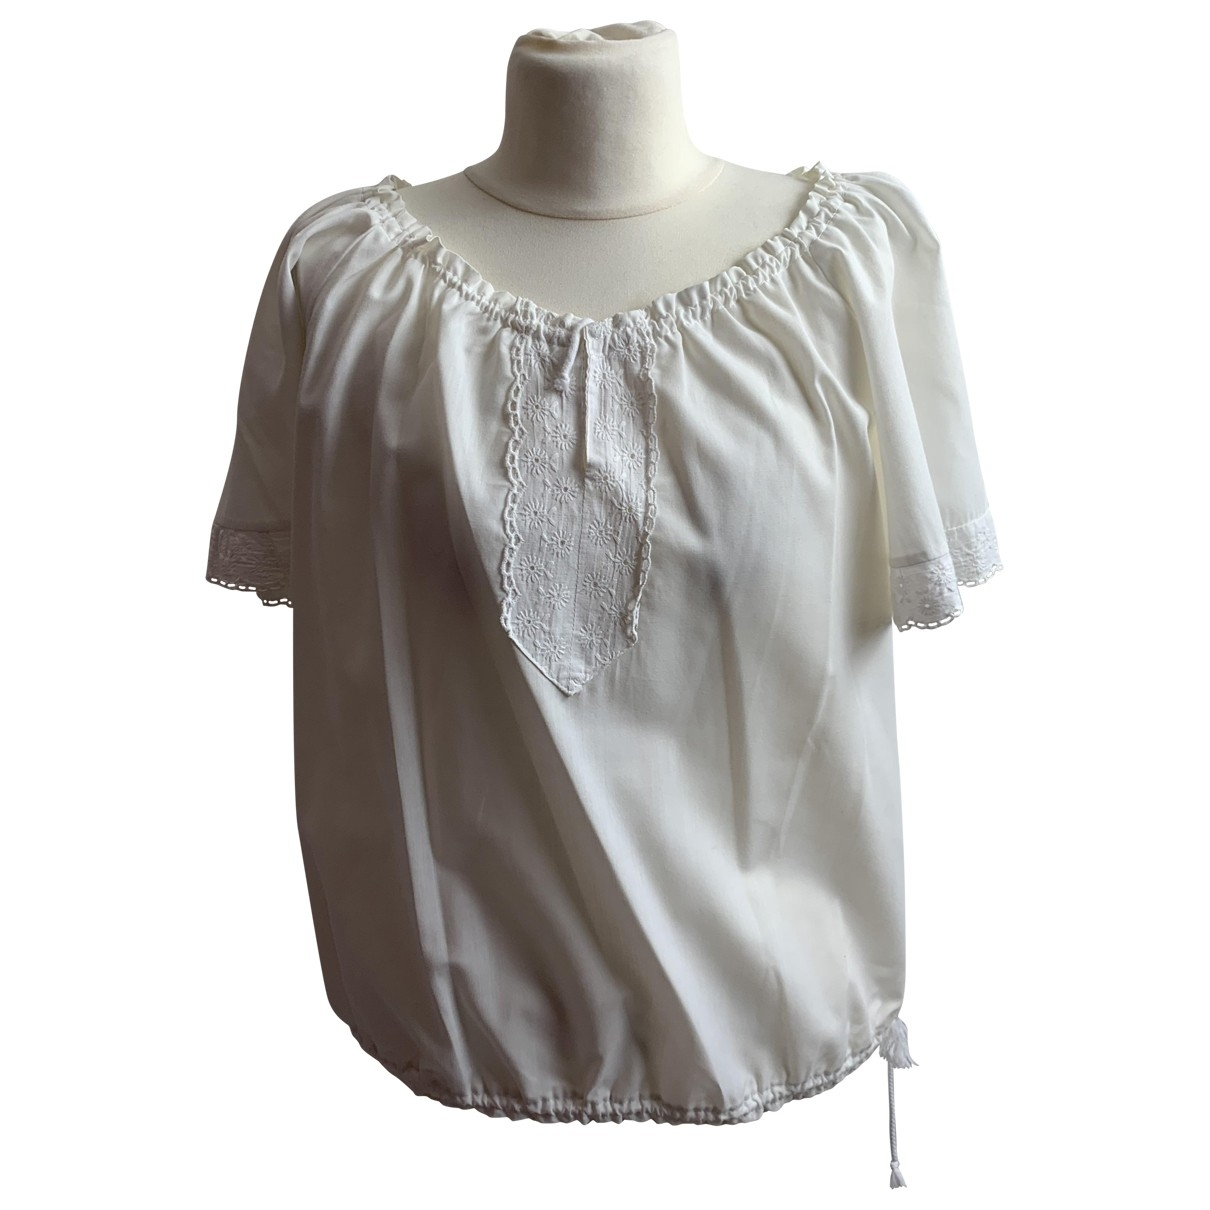 Non Signé / Unsigned \N White Cotton  top for Women 54-56 IT